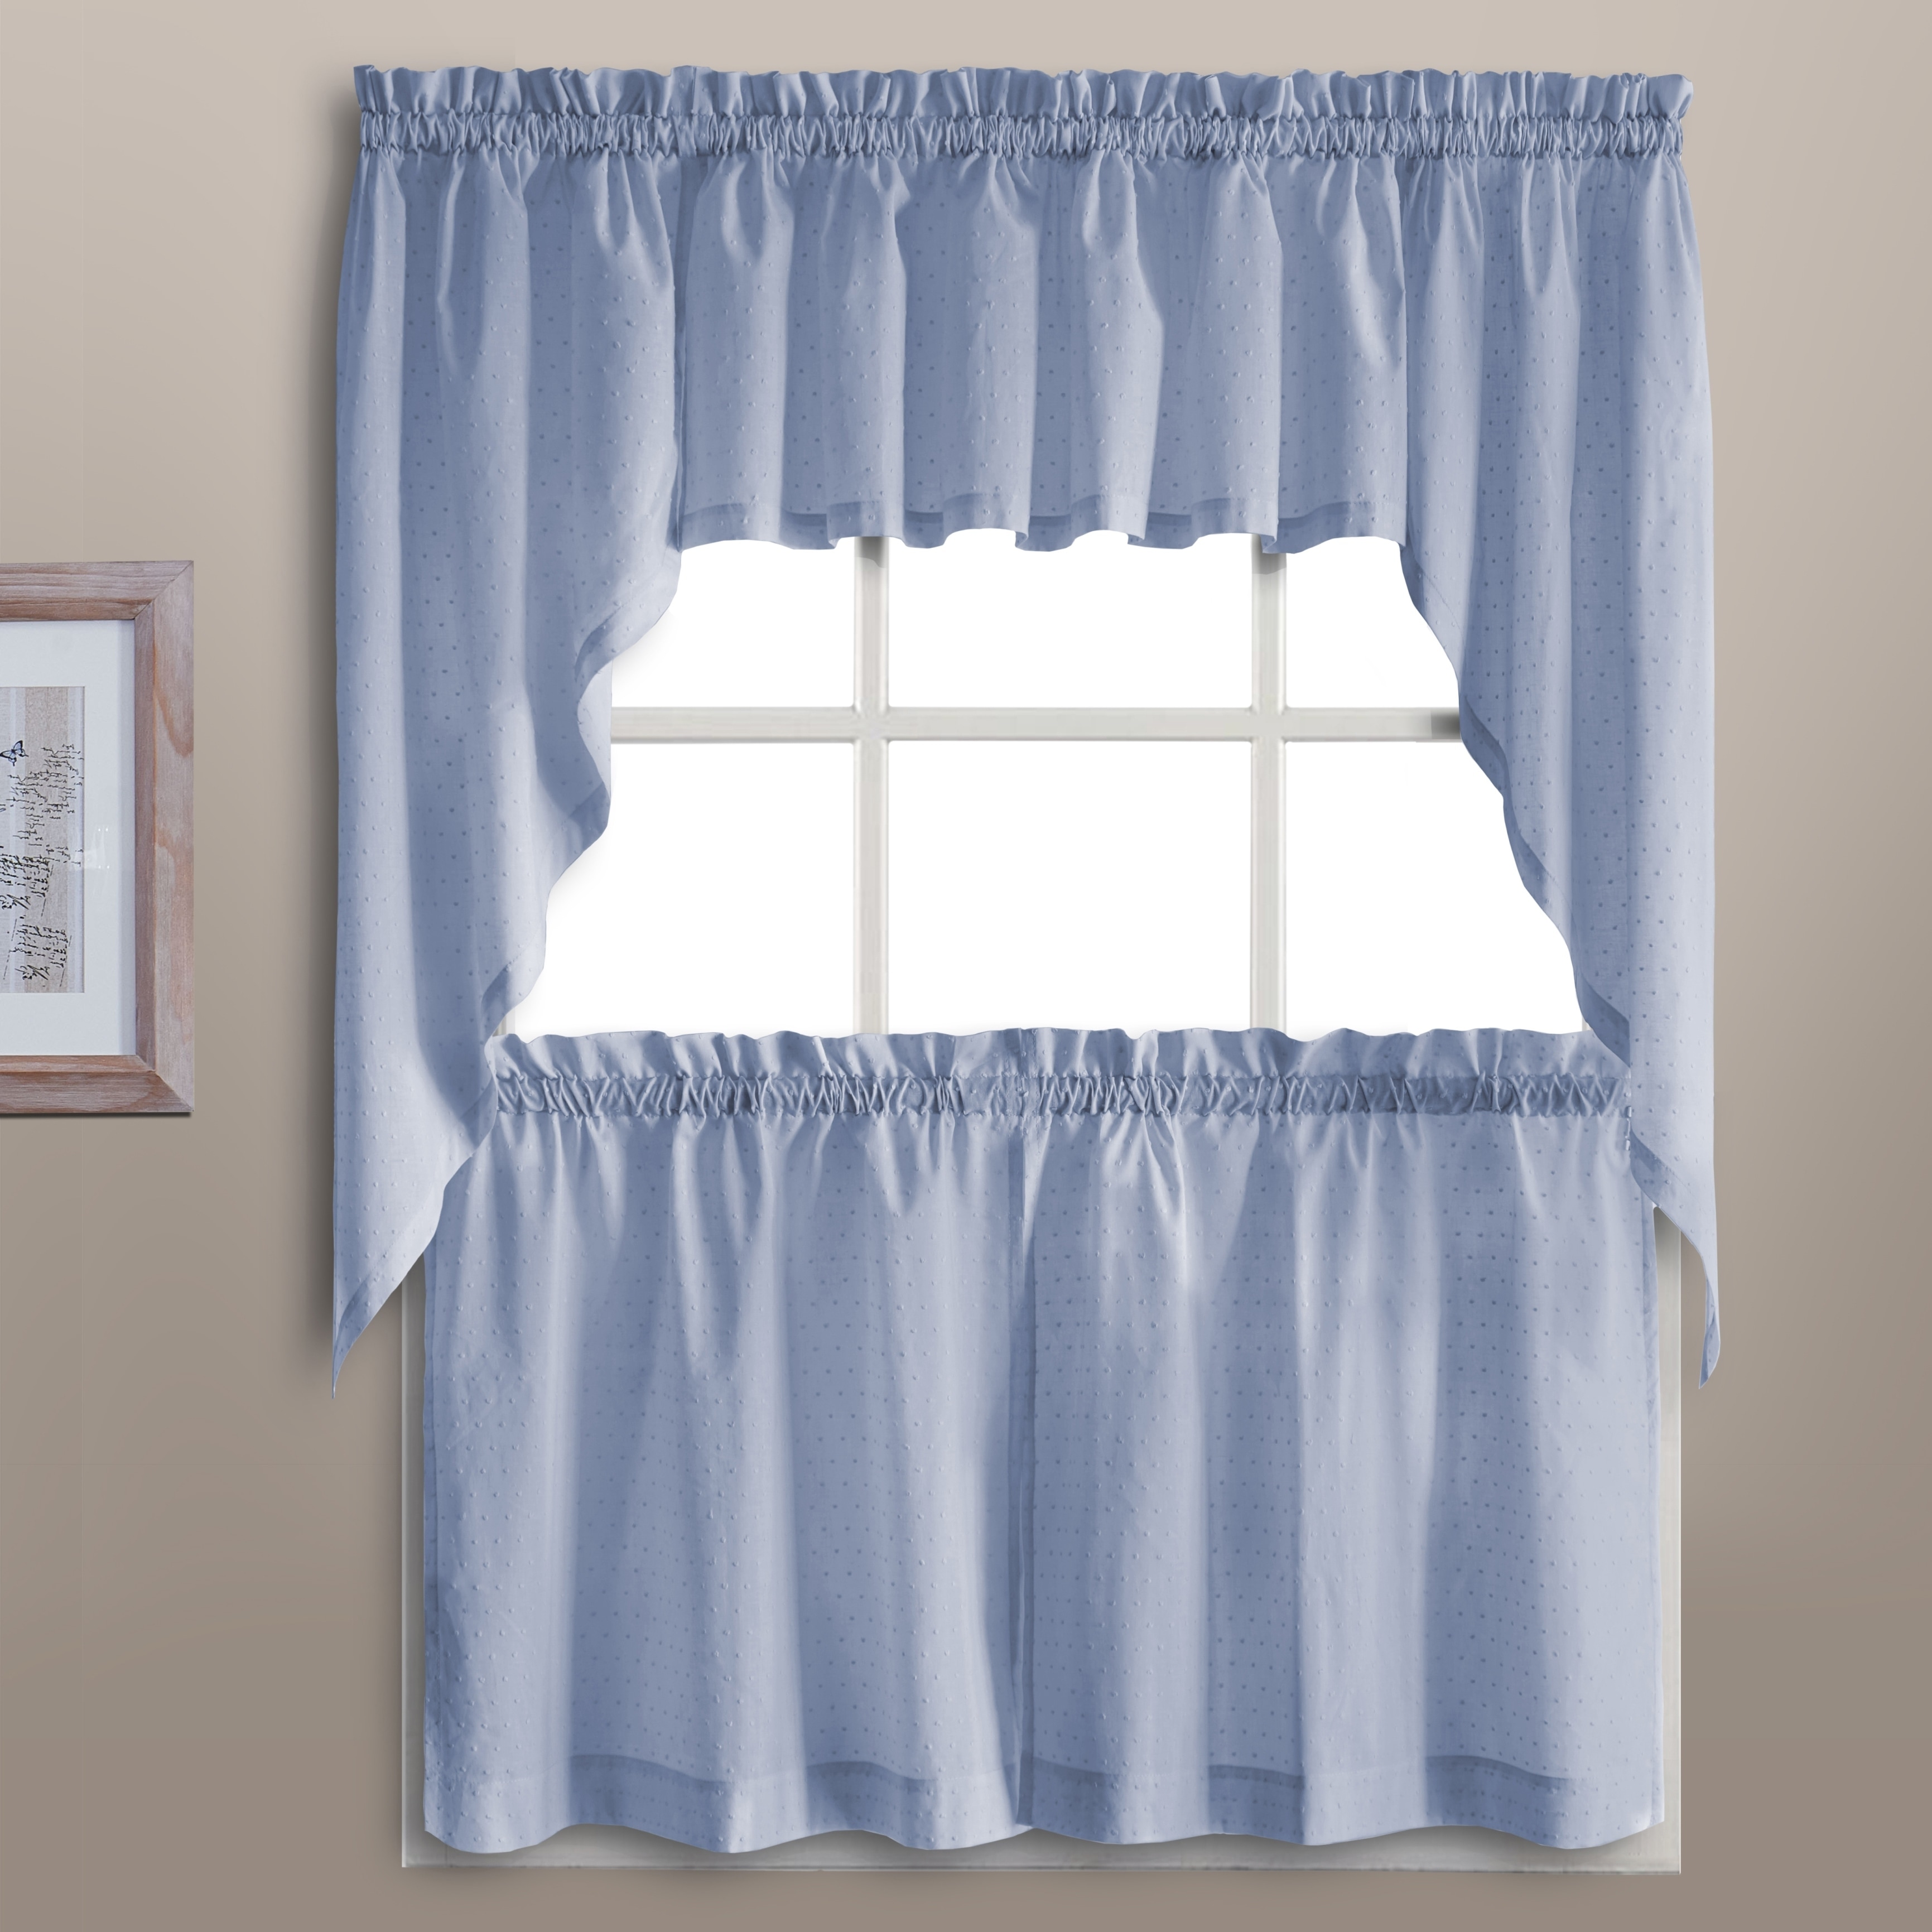 chenille ltd usa cording ip maison valance bryce with blue walmart com belle scalloped kitchen